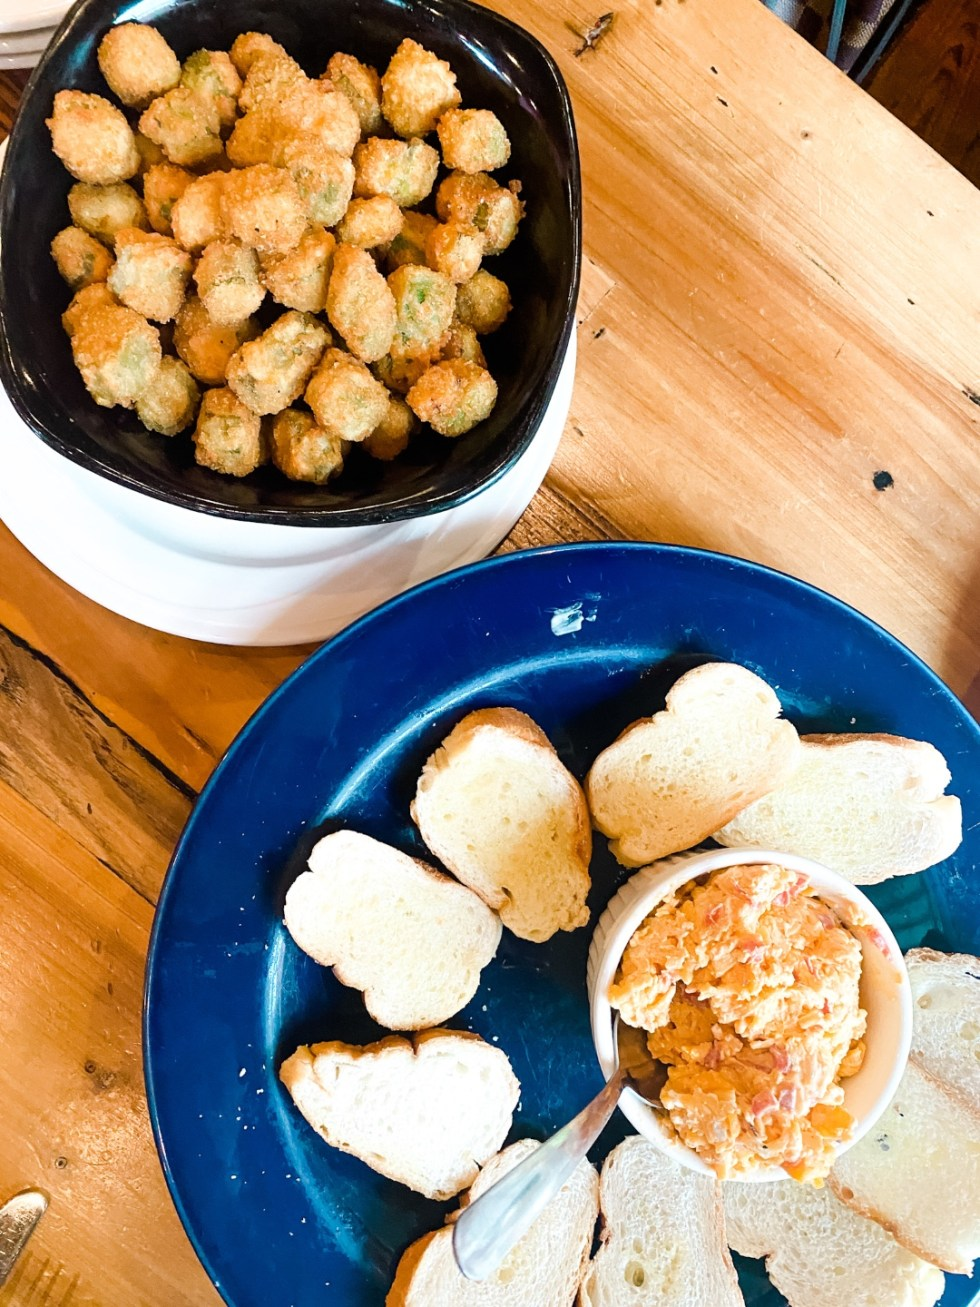 Best Southern Food: Top 7 Southern Staples to Try - I'm Fixin' To - @mbg0112 |Best Southern Food by popular N.C. lifestyle blog, I'm Fixin' To: image of fried okra.